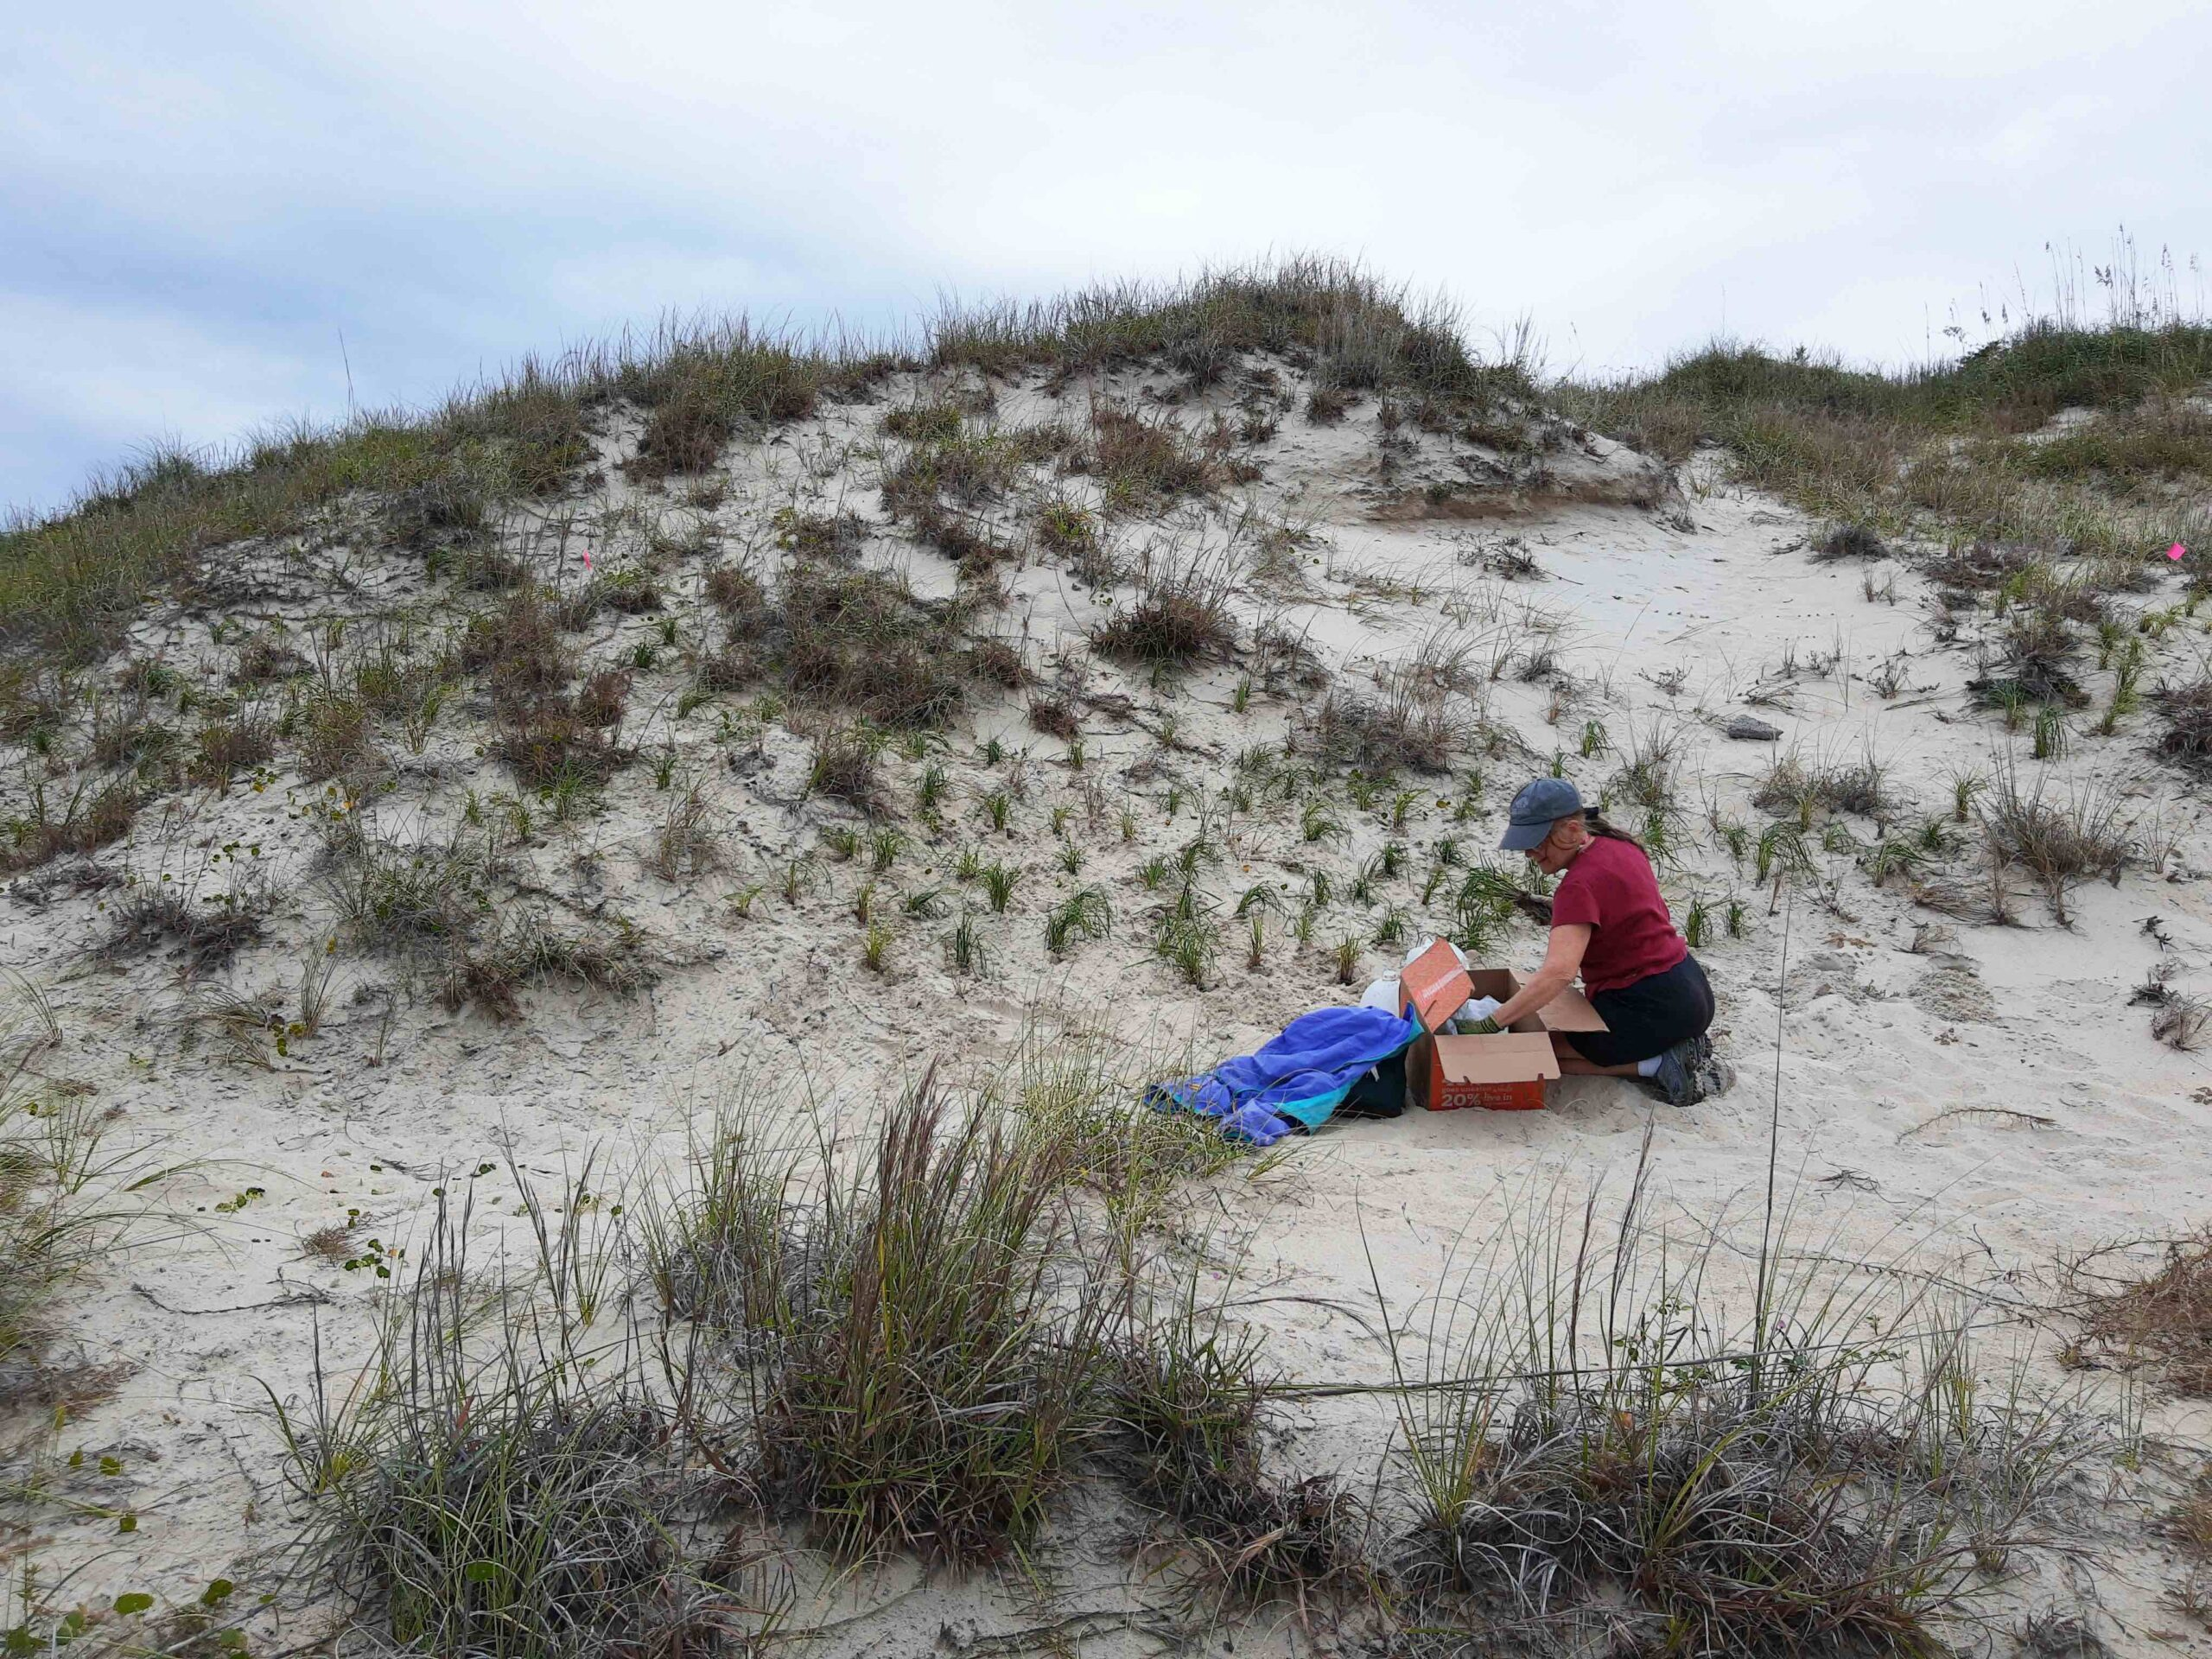 Volunteer Georgia Minnich, who recently retired from the N.C. Aquarium at Pine Knoll Shores, plants seaside little bluestem in the Williams dune.